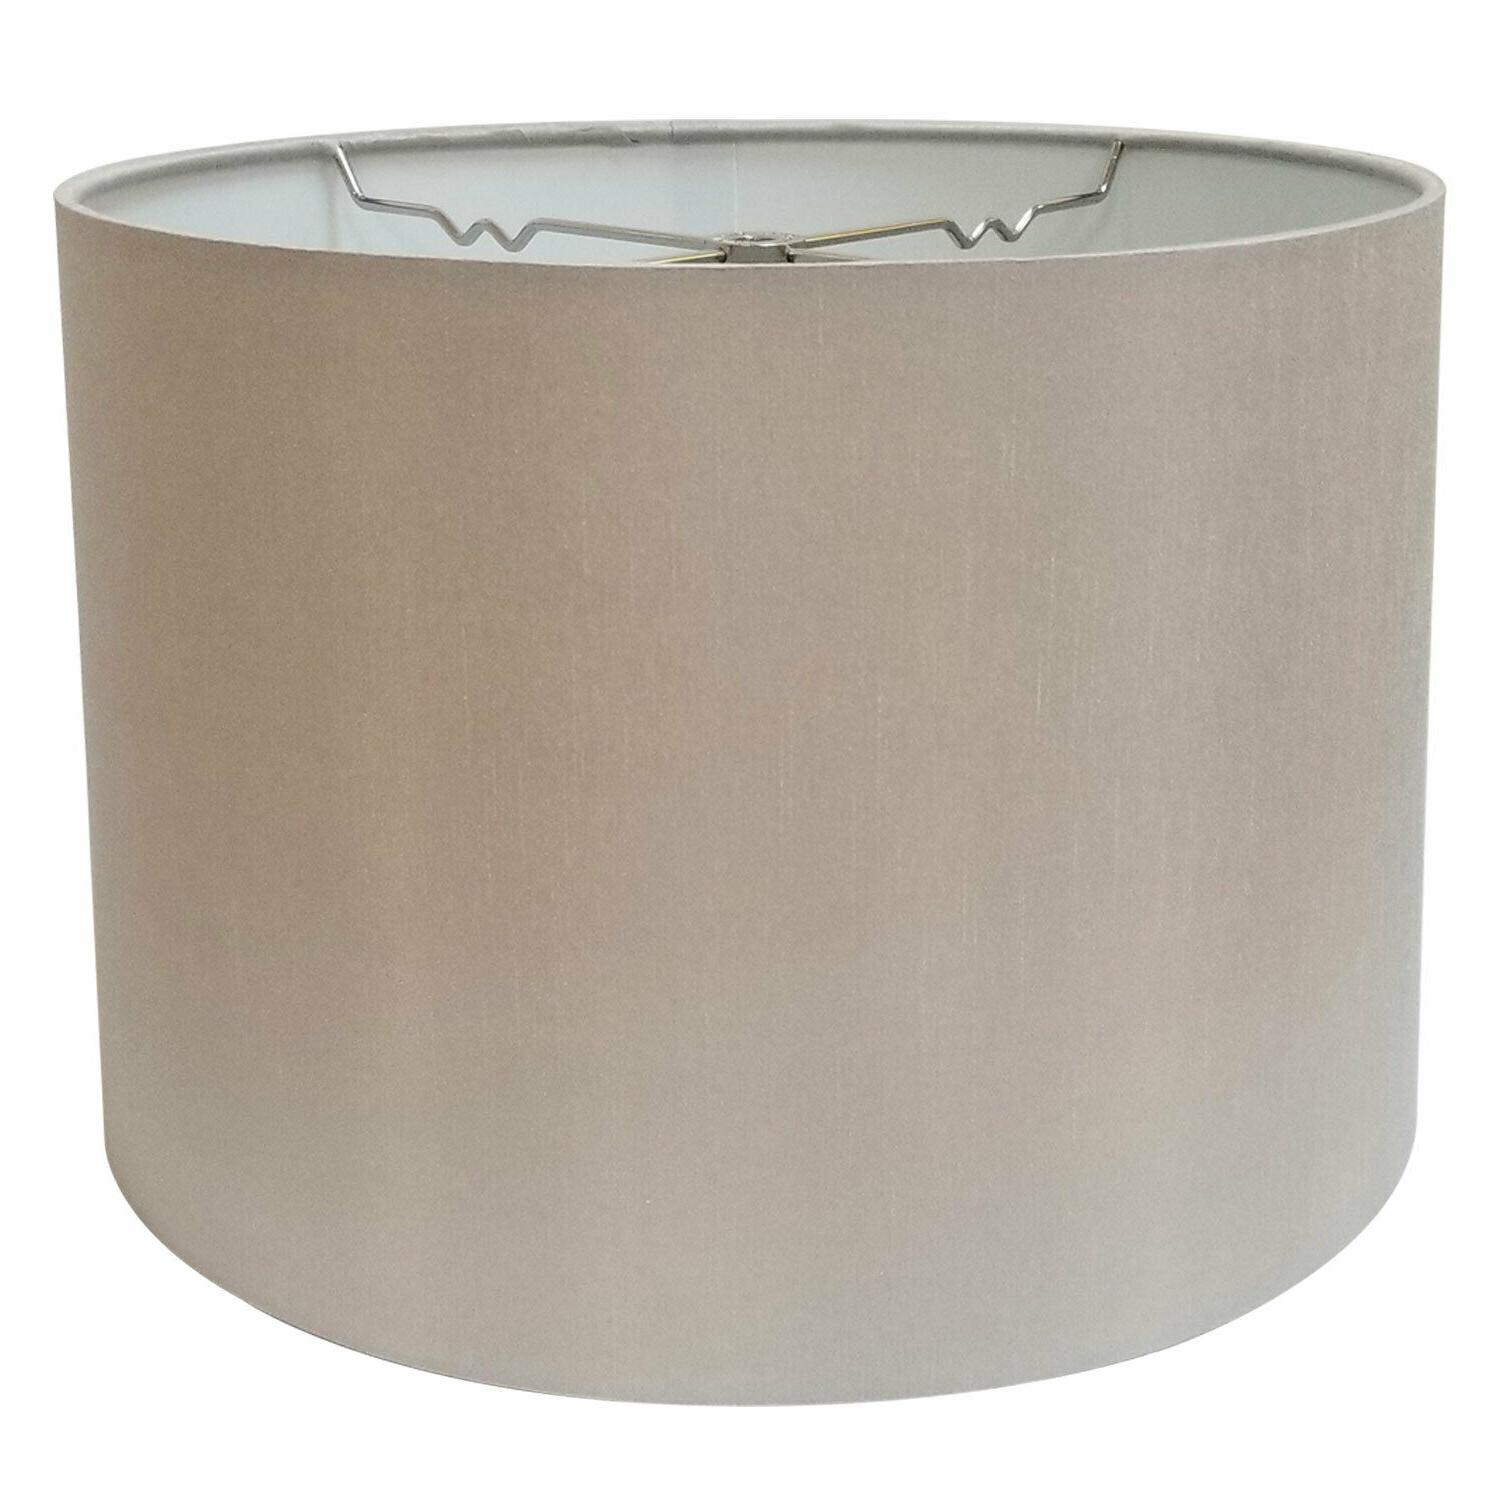 shallow drum hardback lamp shade with nickel